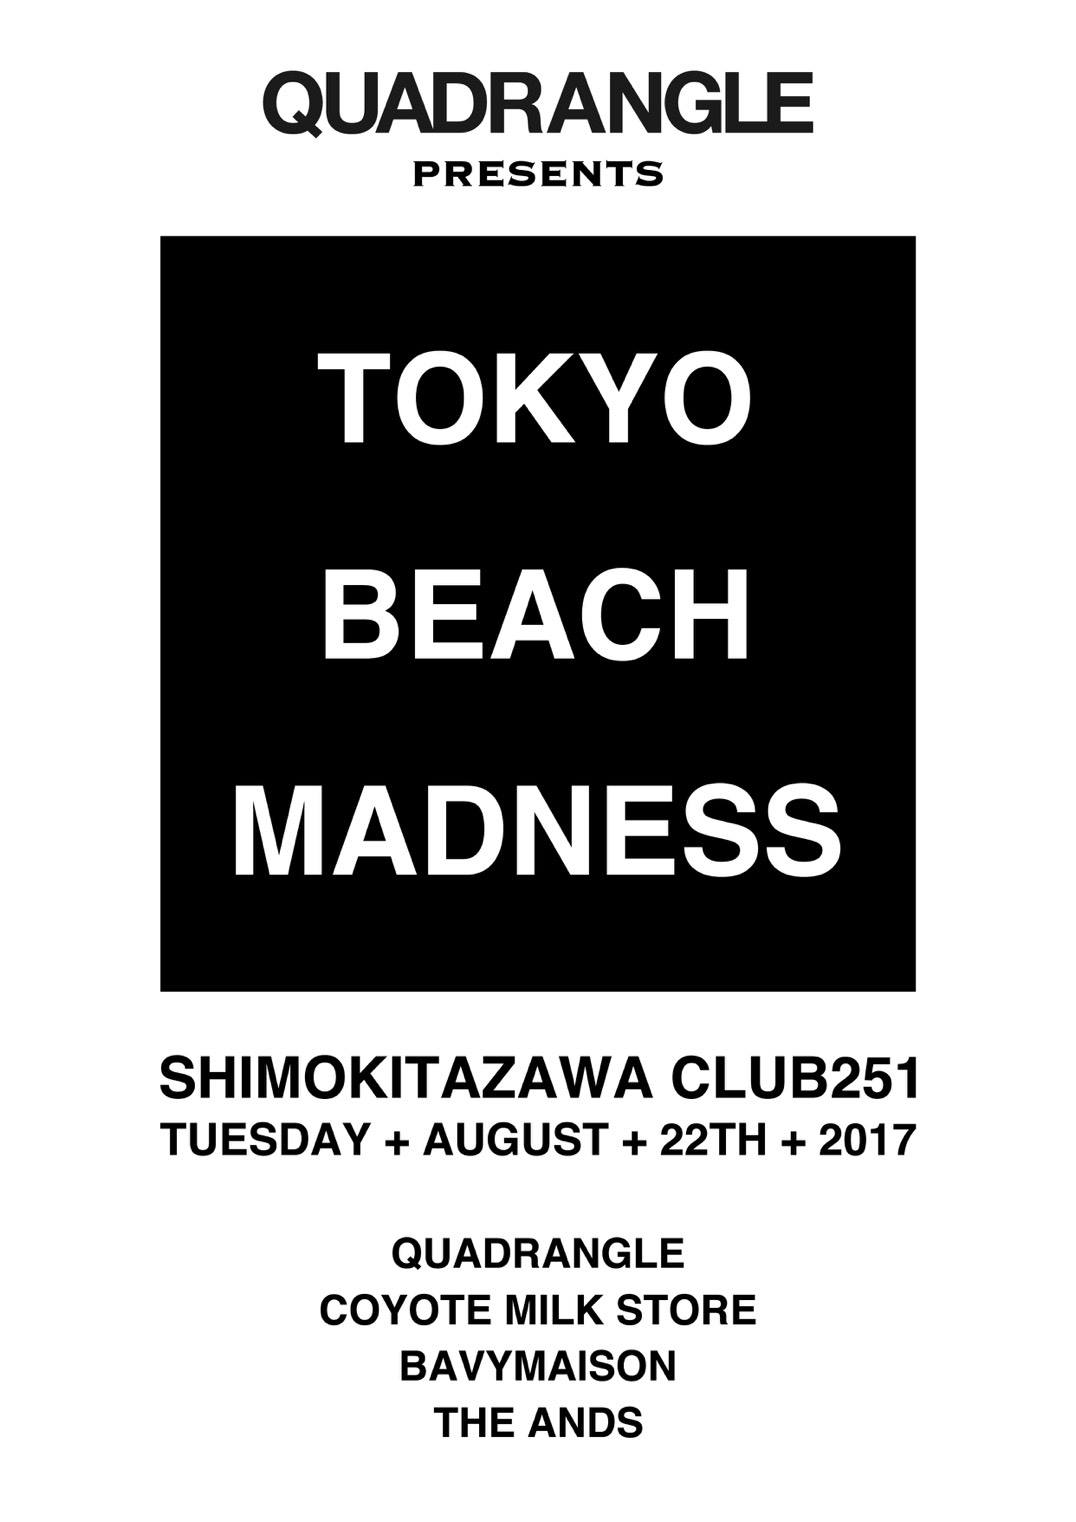 QUADRANGLE PRESENTS TOKYO BEACH MADNESS